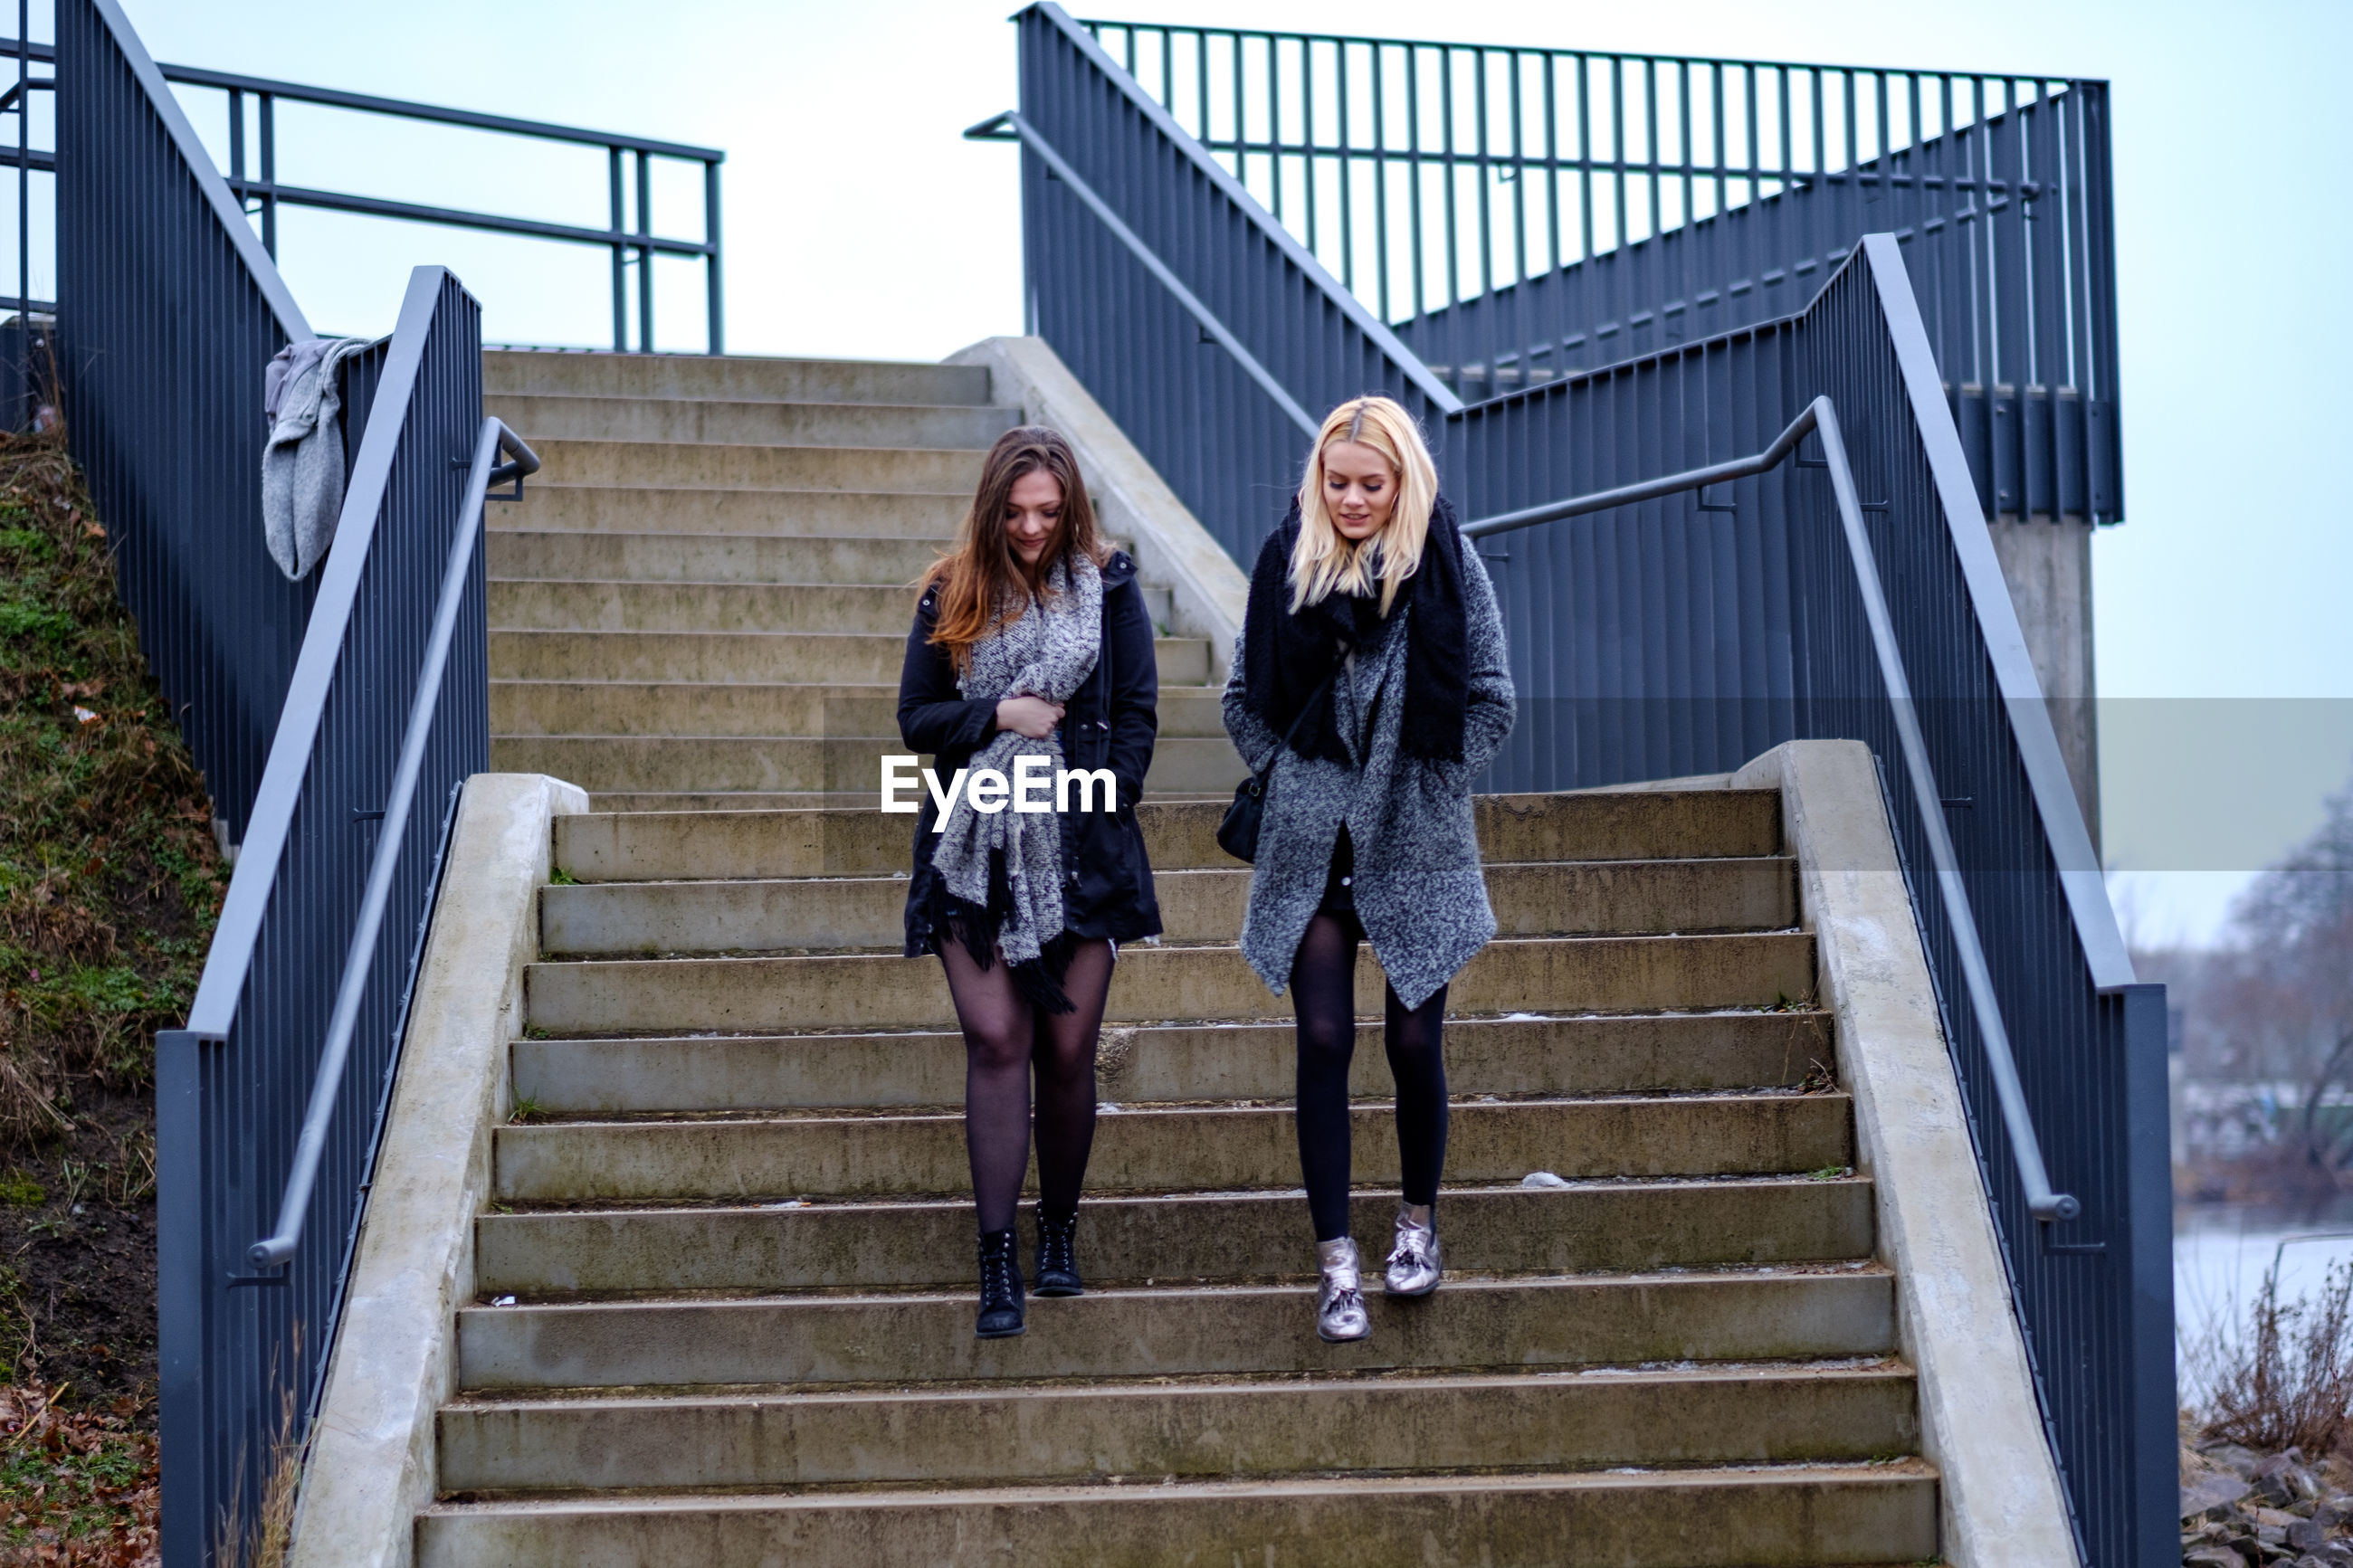 Young women walking on staircase against sky